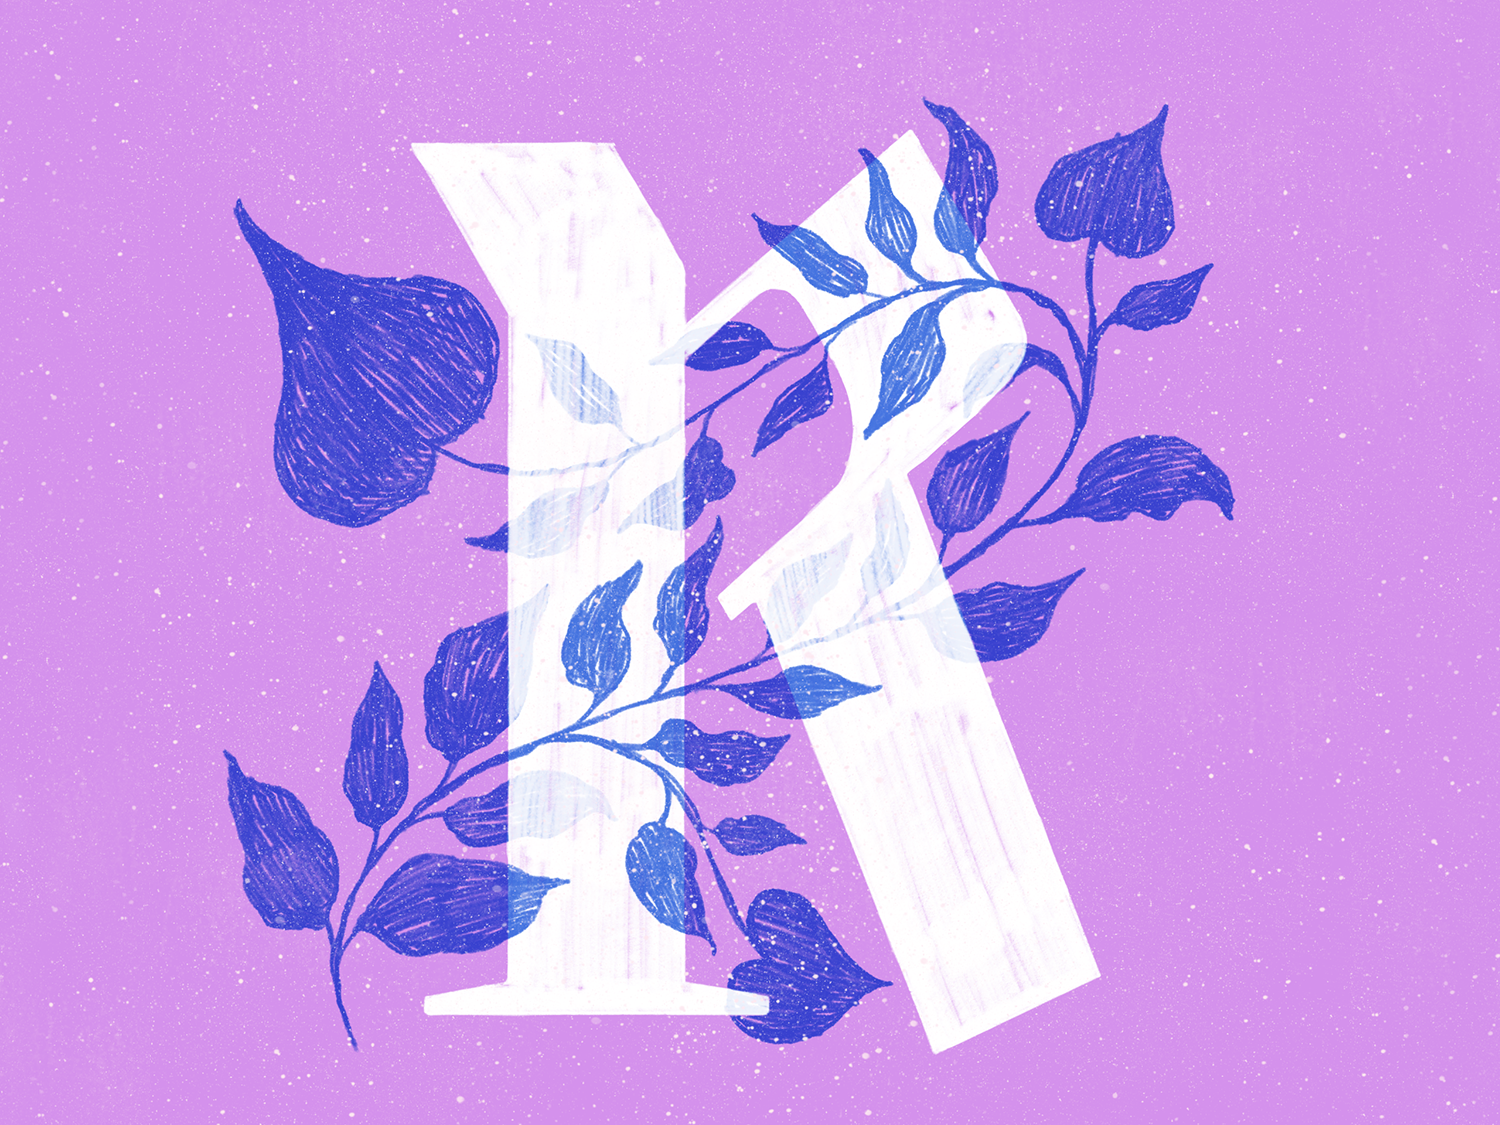 R plants procreate typography type 36daysoftype lettering texture illustration